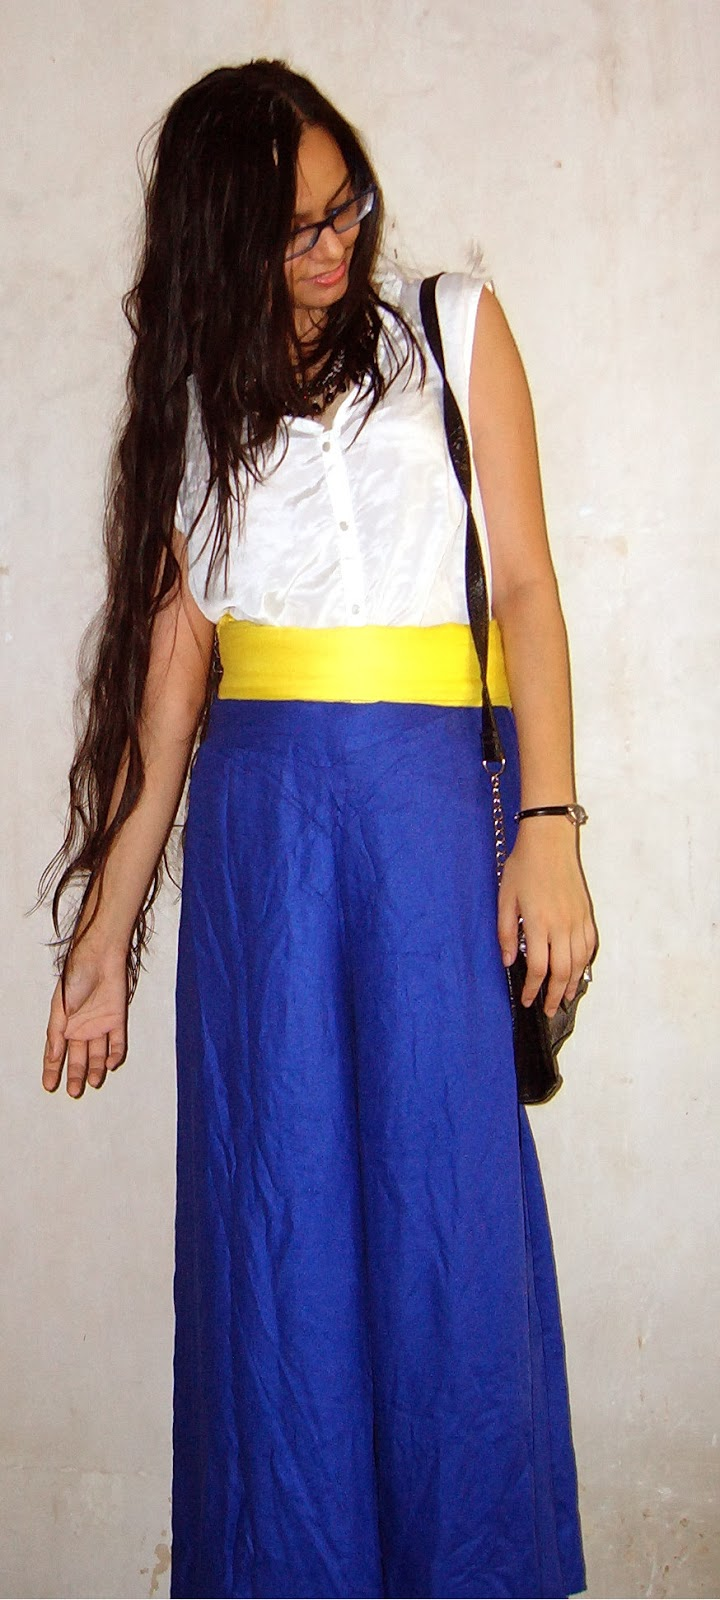 electric blue palazzo pants, white shirt, yellow belt, oversized, street shopping in mumbai, fashion blogger, streetstyle